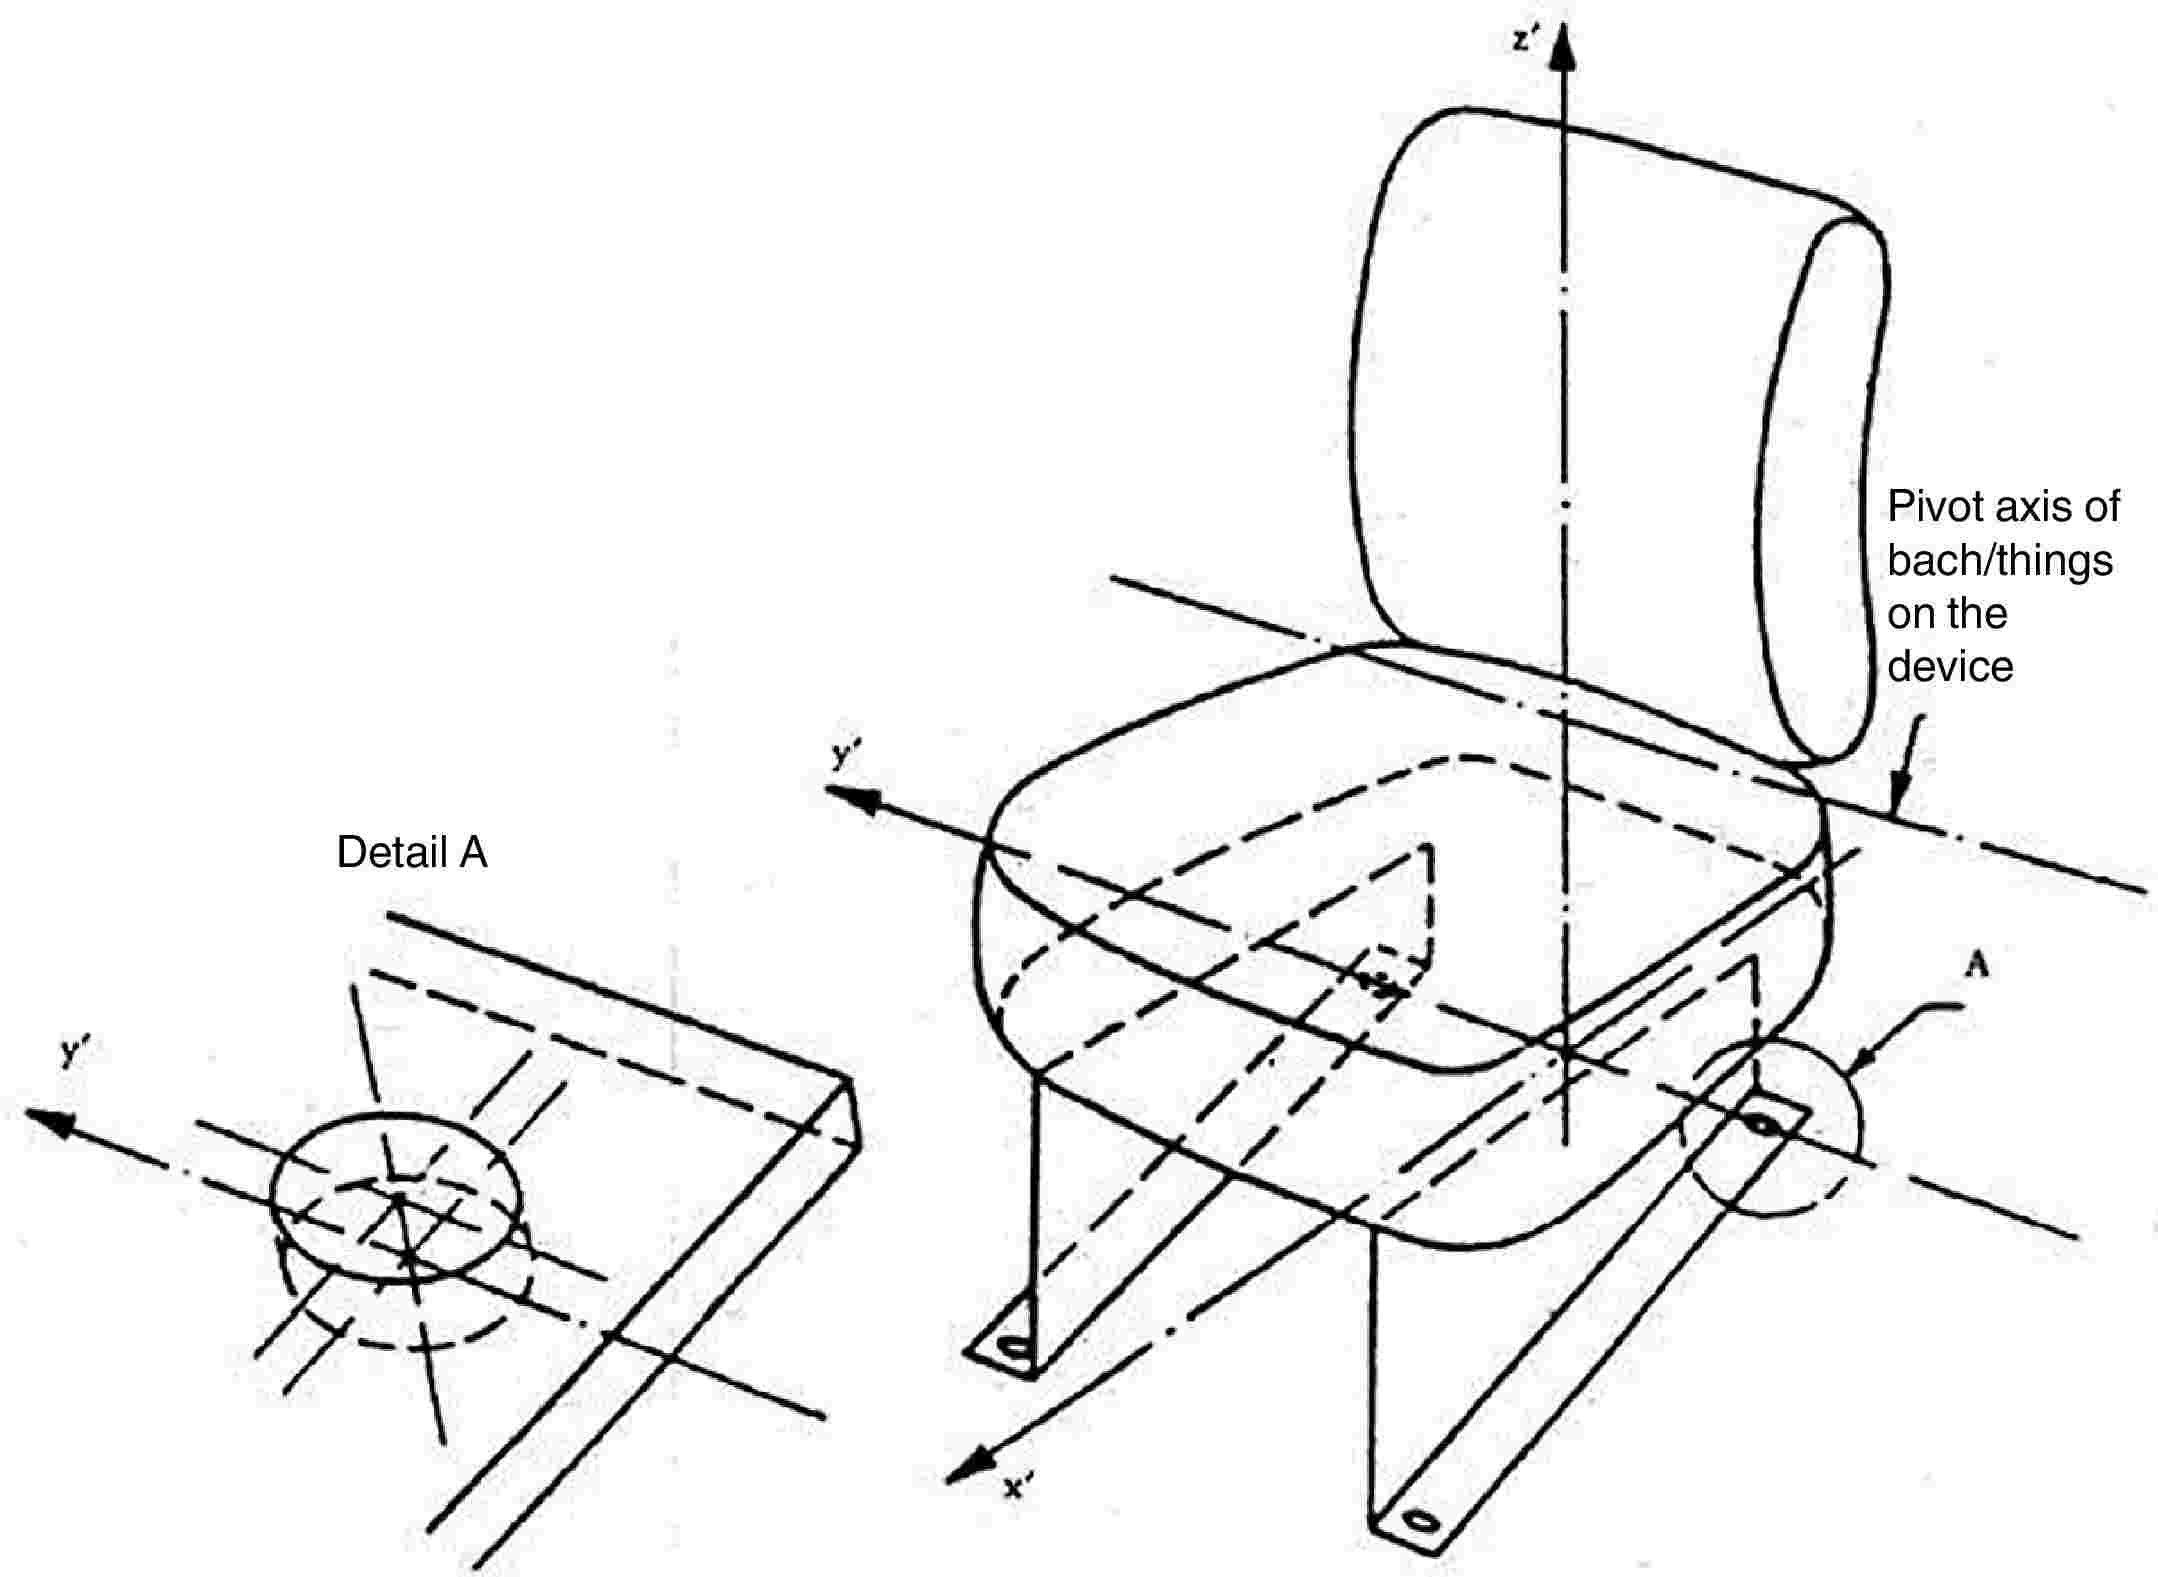 Eur Lex 02009l0144 20130701 En Kenmore Sewing Machine Parts Diagram Detail Apivot Axis Of Bach Things On The Device